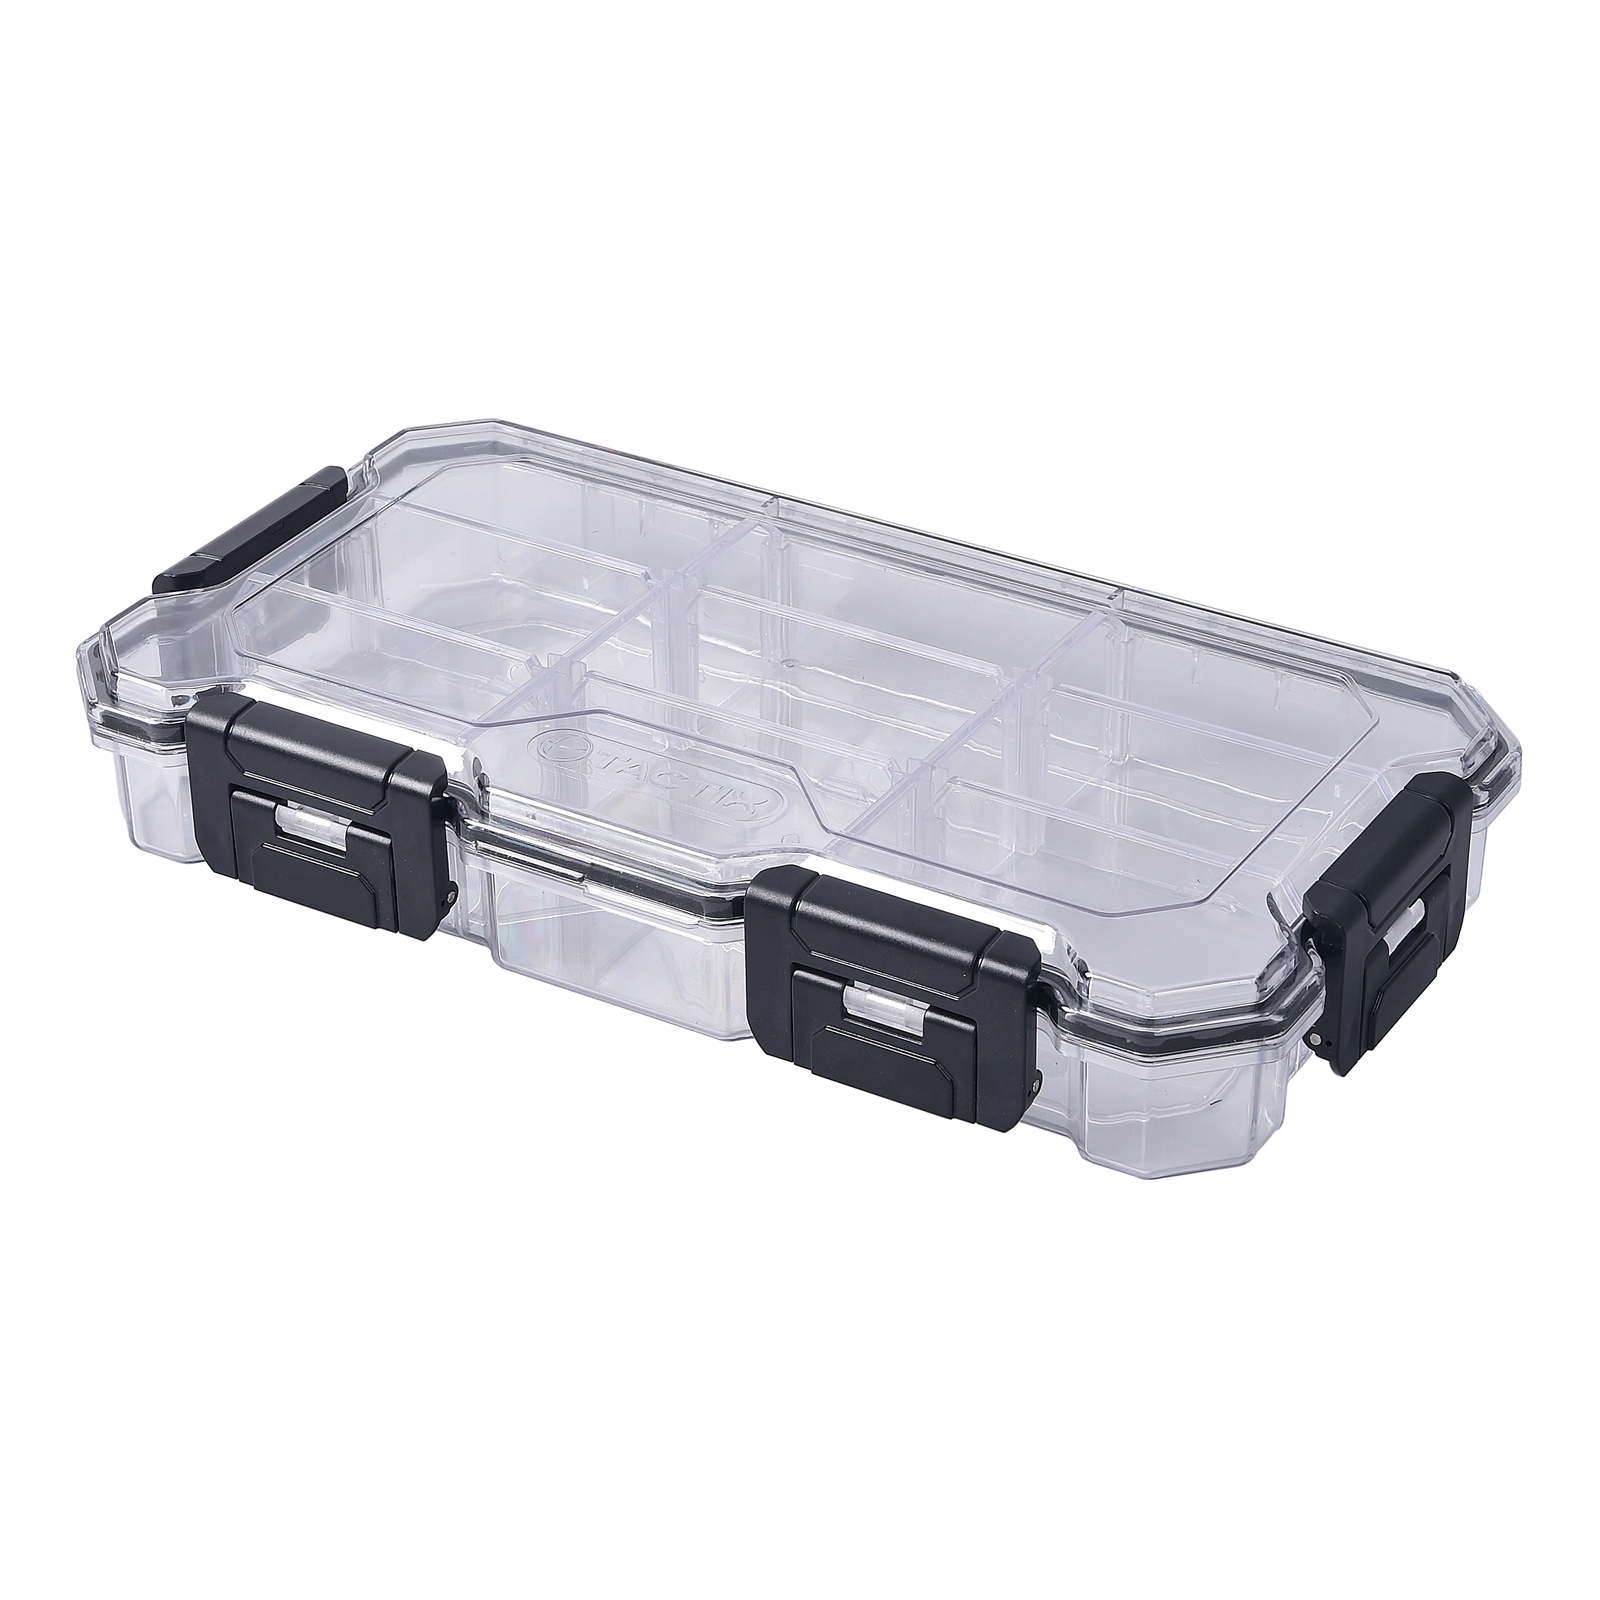 Tactix 9 Compartment Waterproof Storage Box IP68 Rated